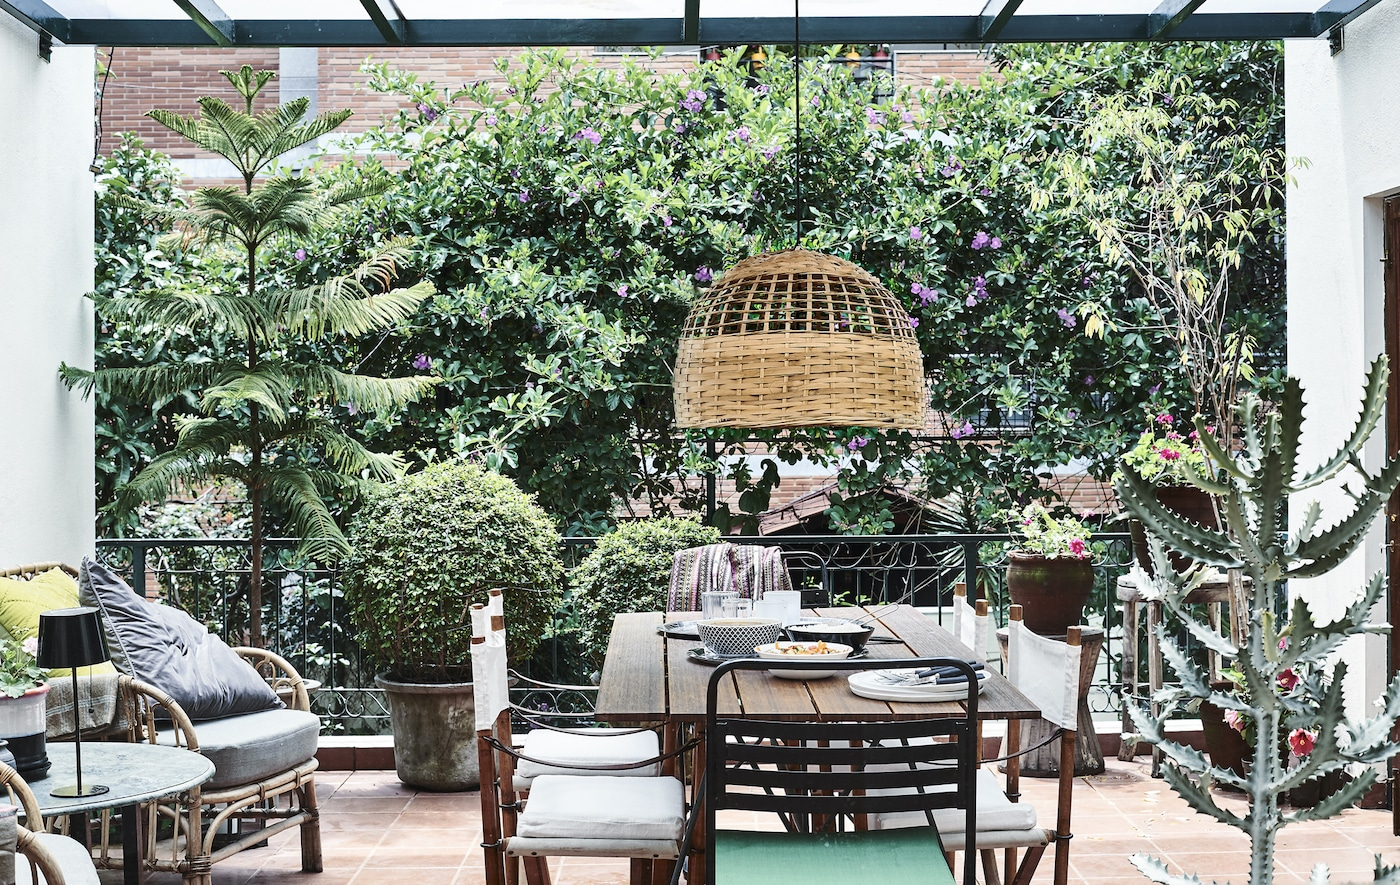 A balcony with plants, chairs, table and pendant lamp.